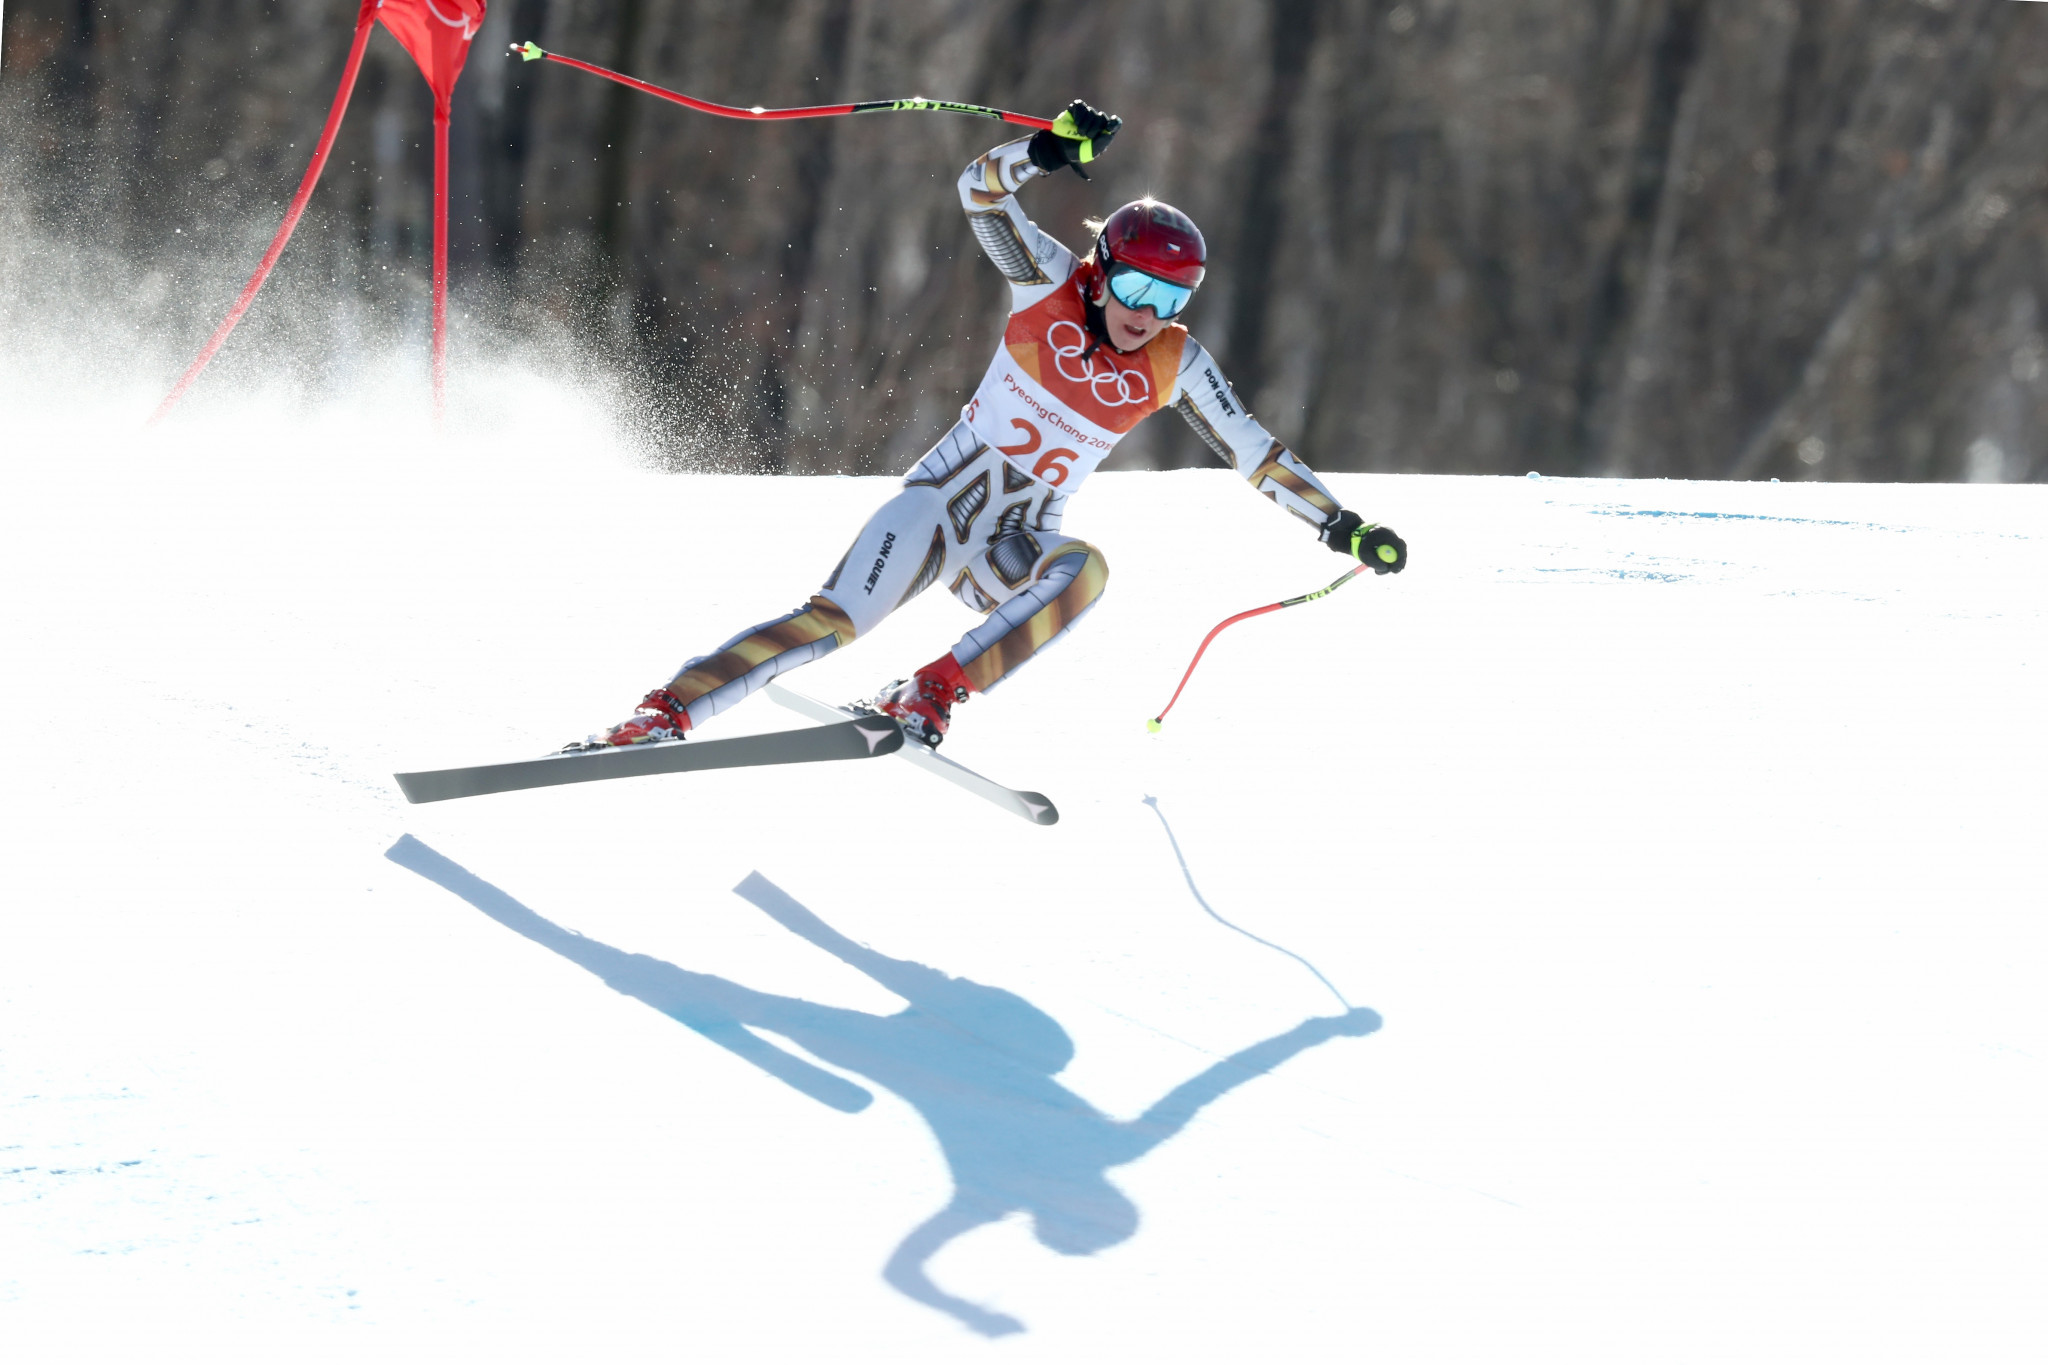 Czech snowboarder Ester Ledecká winning the Alpine skiing super-G event at Pyeongchang 2018 was one of the all-time Winter Olympic shocks ©Getty Images